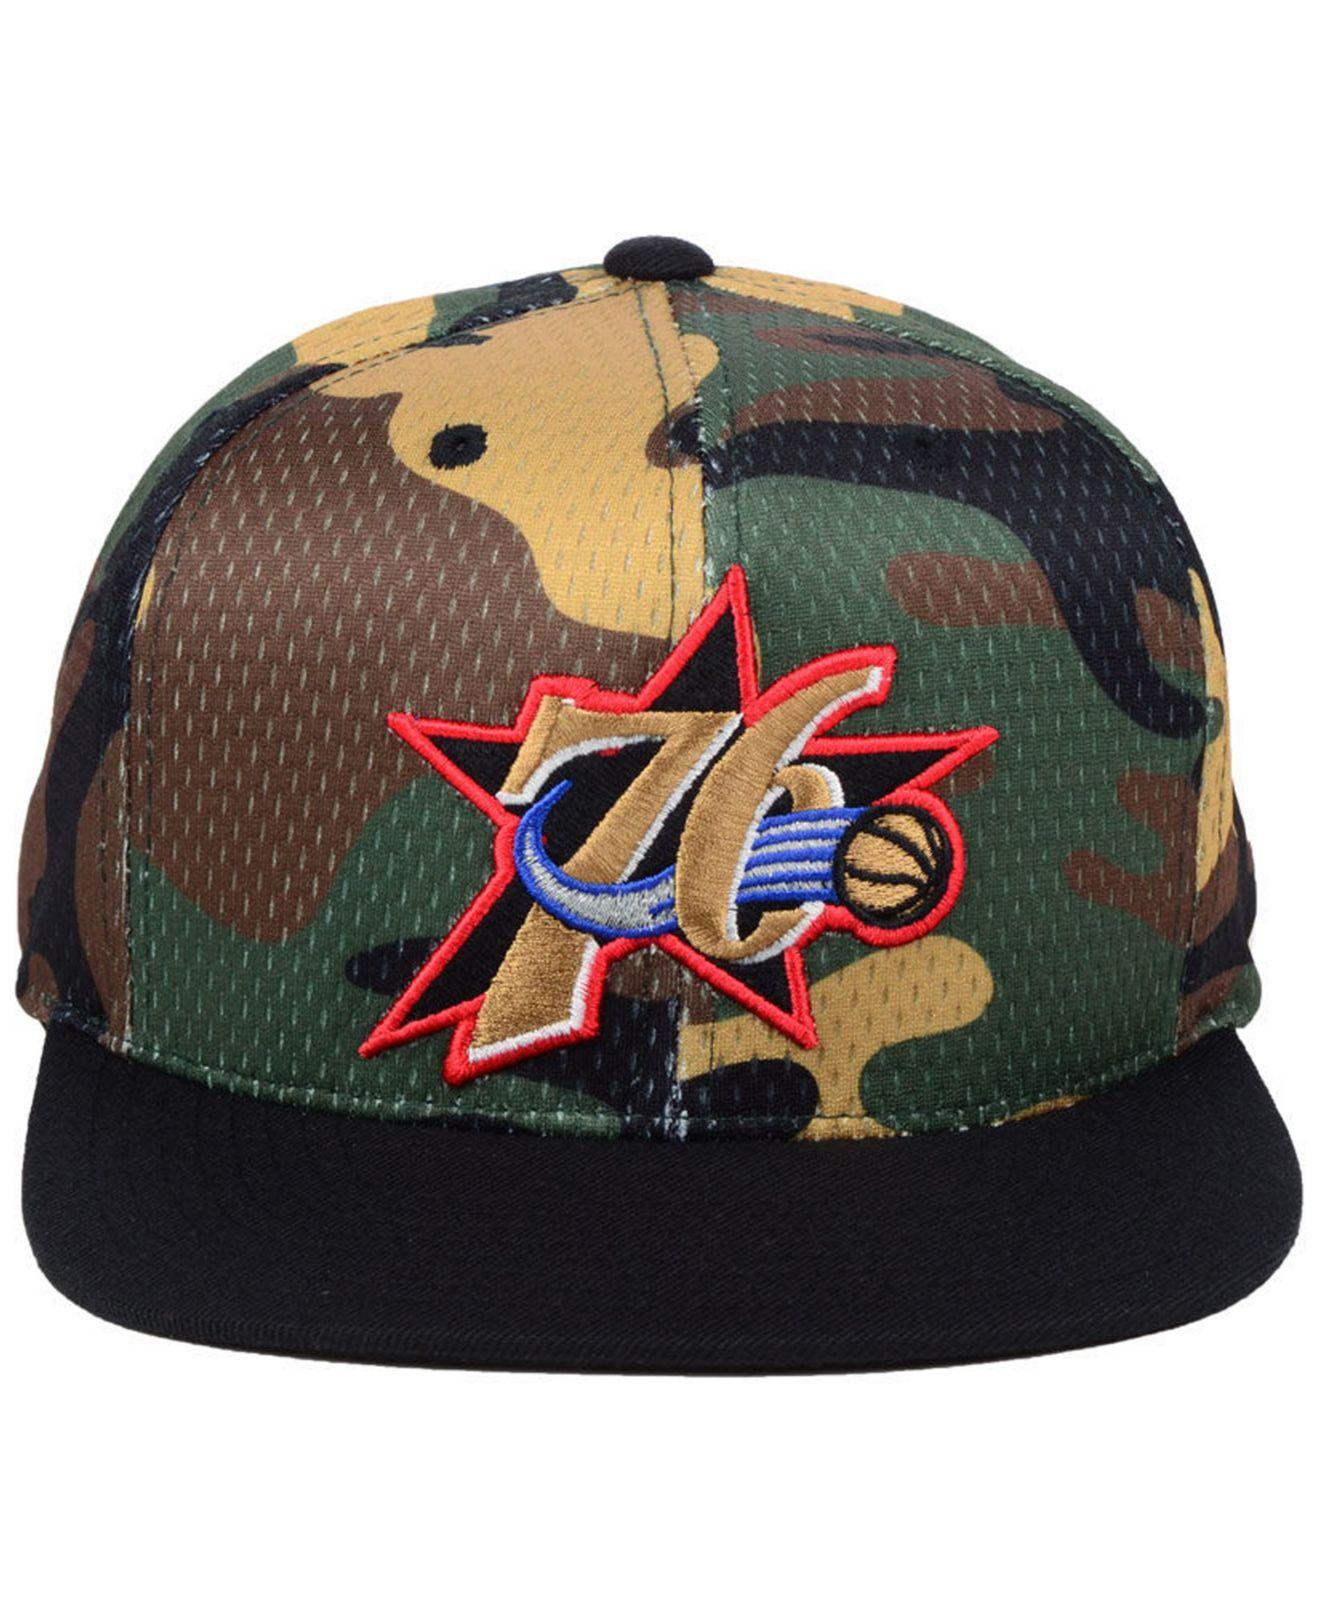 6d176e97d93c8 Lyst - Mitchell   Ness Philadelphia 76ers Woodland Camo Hook Snapback Cap  for Men